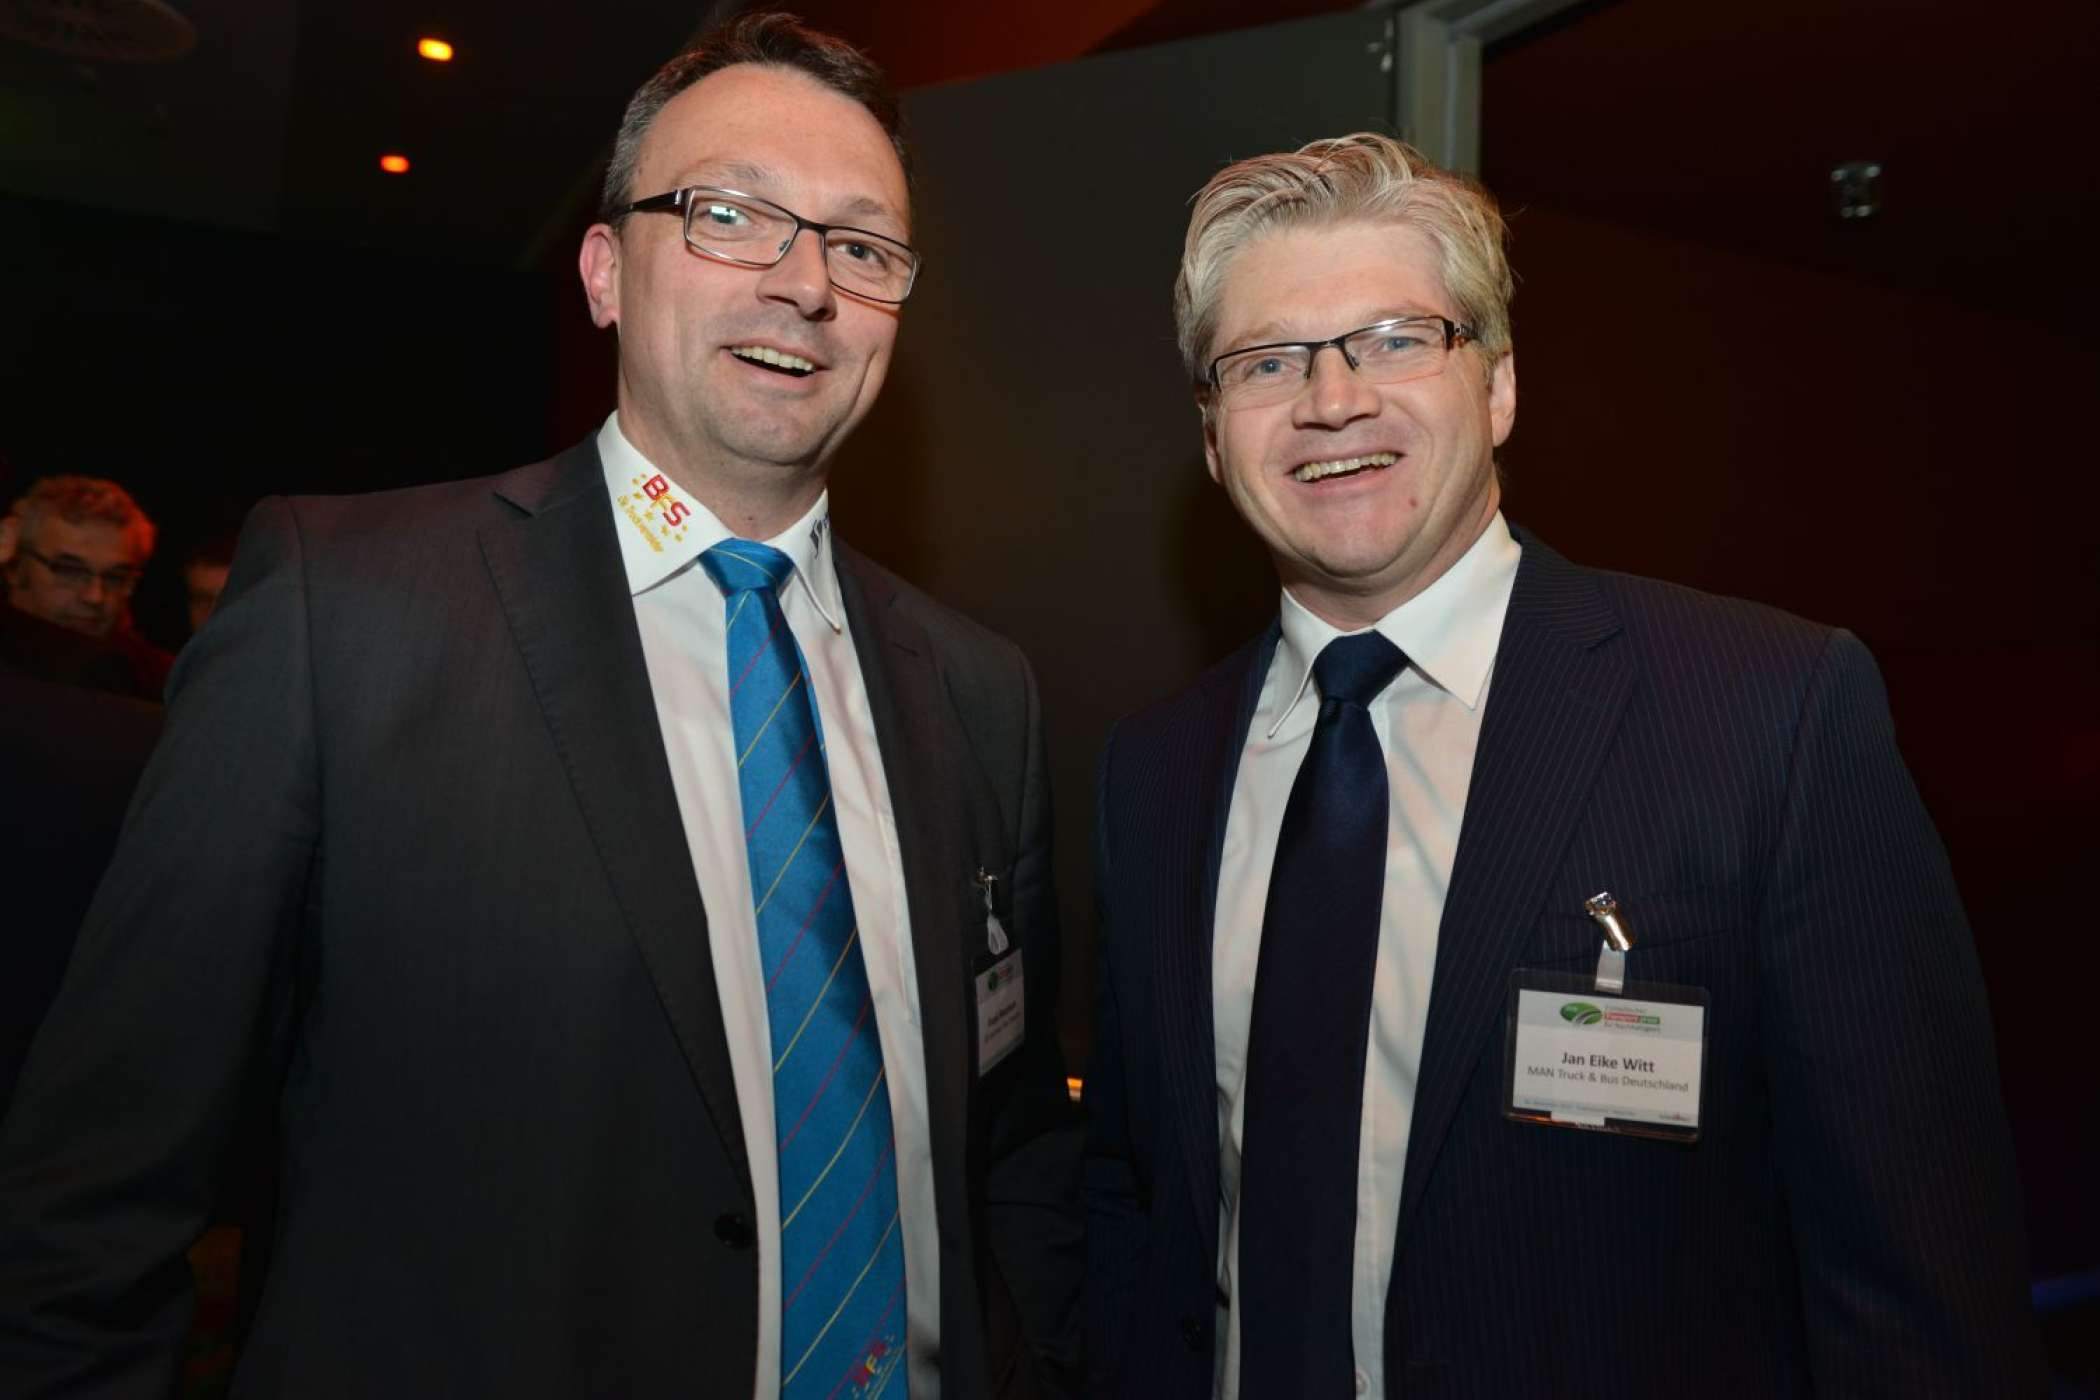 Frank Neumann (li.), BFS Business Fleet Services, und Jan Eike Witt, MAN Truck & BusHUSS-VERLAG